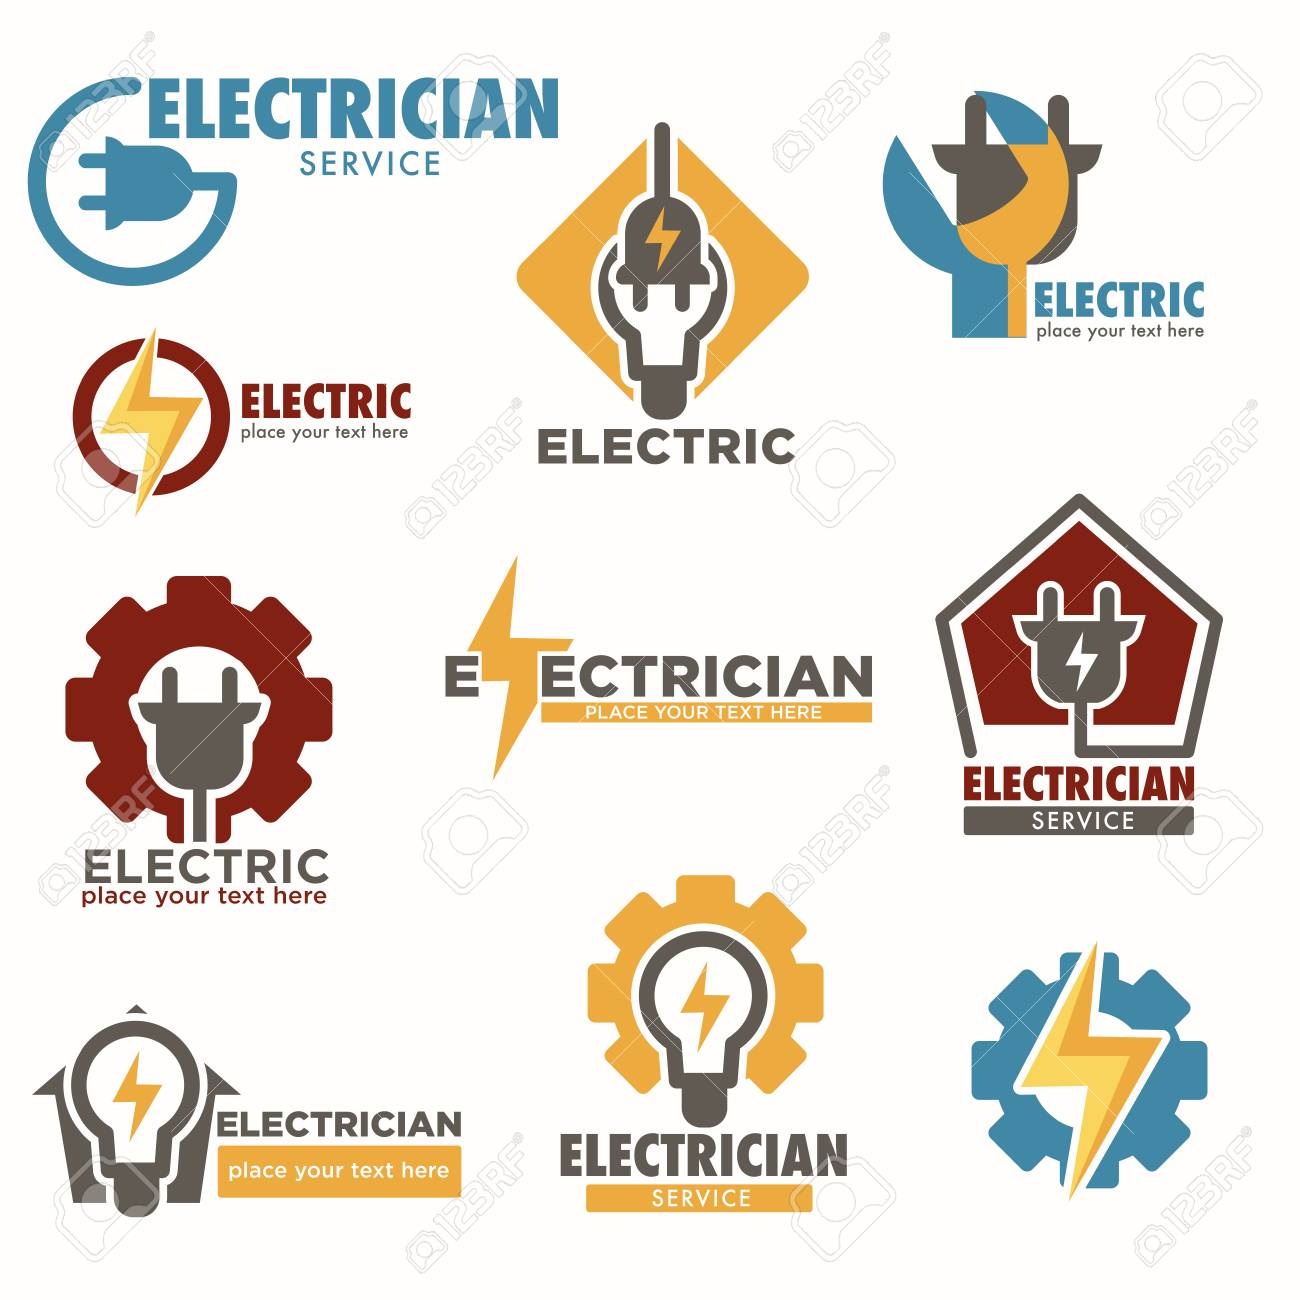 Electrician service and electric sockets with bulbs logos set - 112511329